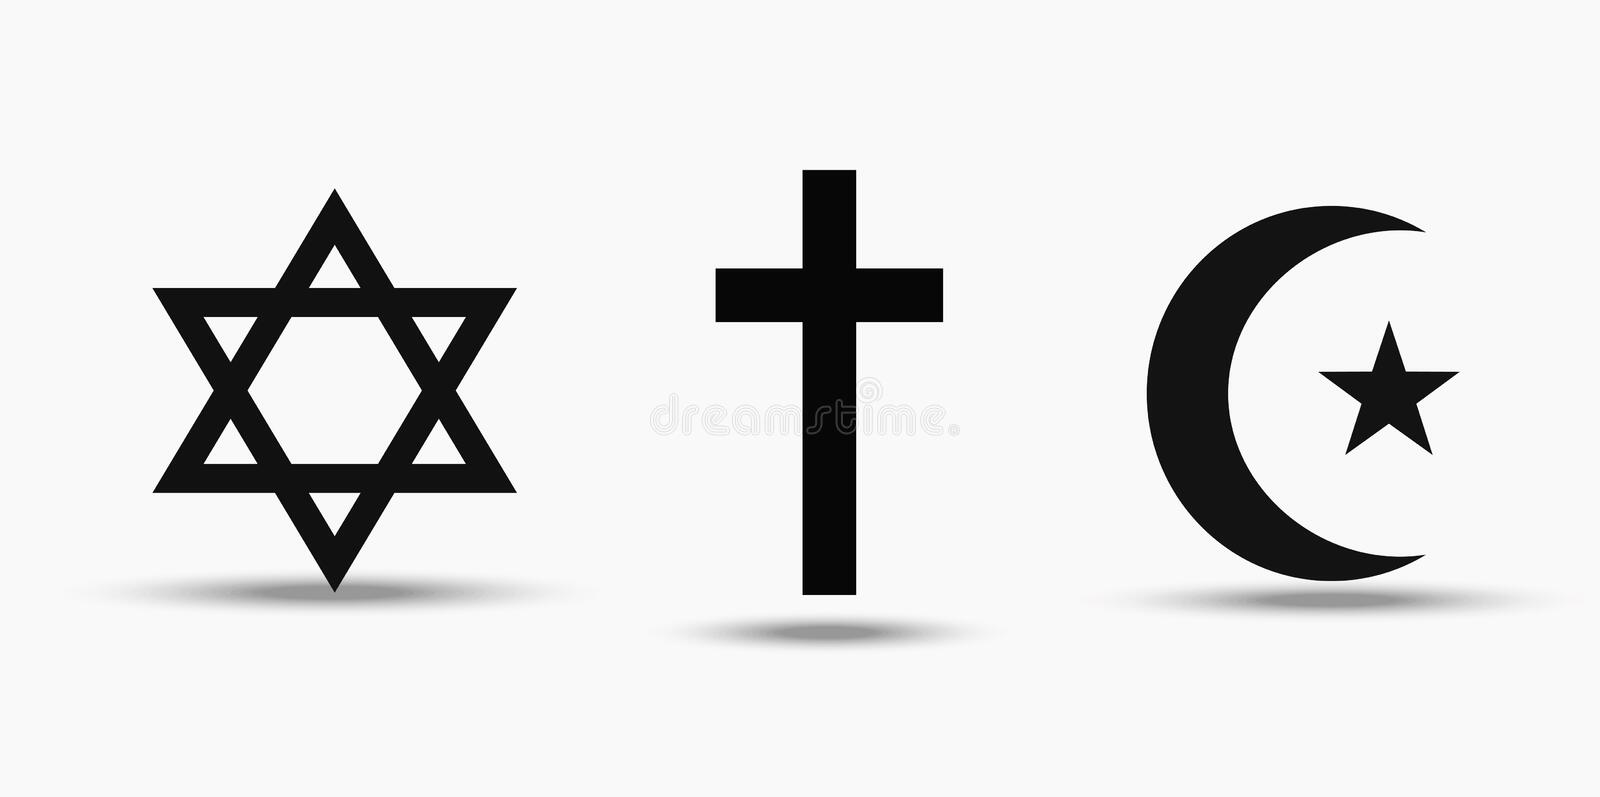 Symbols of the three world religions - Judaism, Christianity and Islam. Isolated on white background royalty free illustration